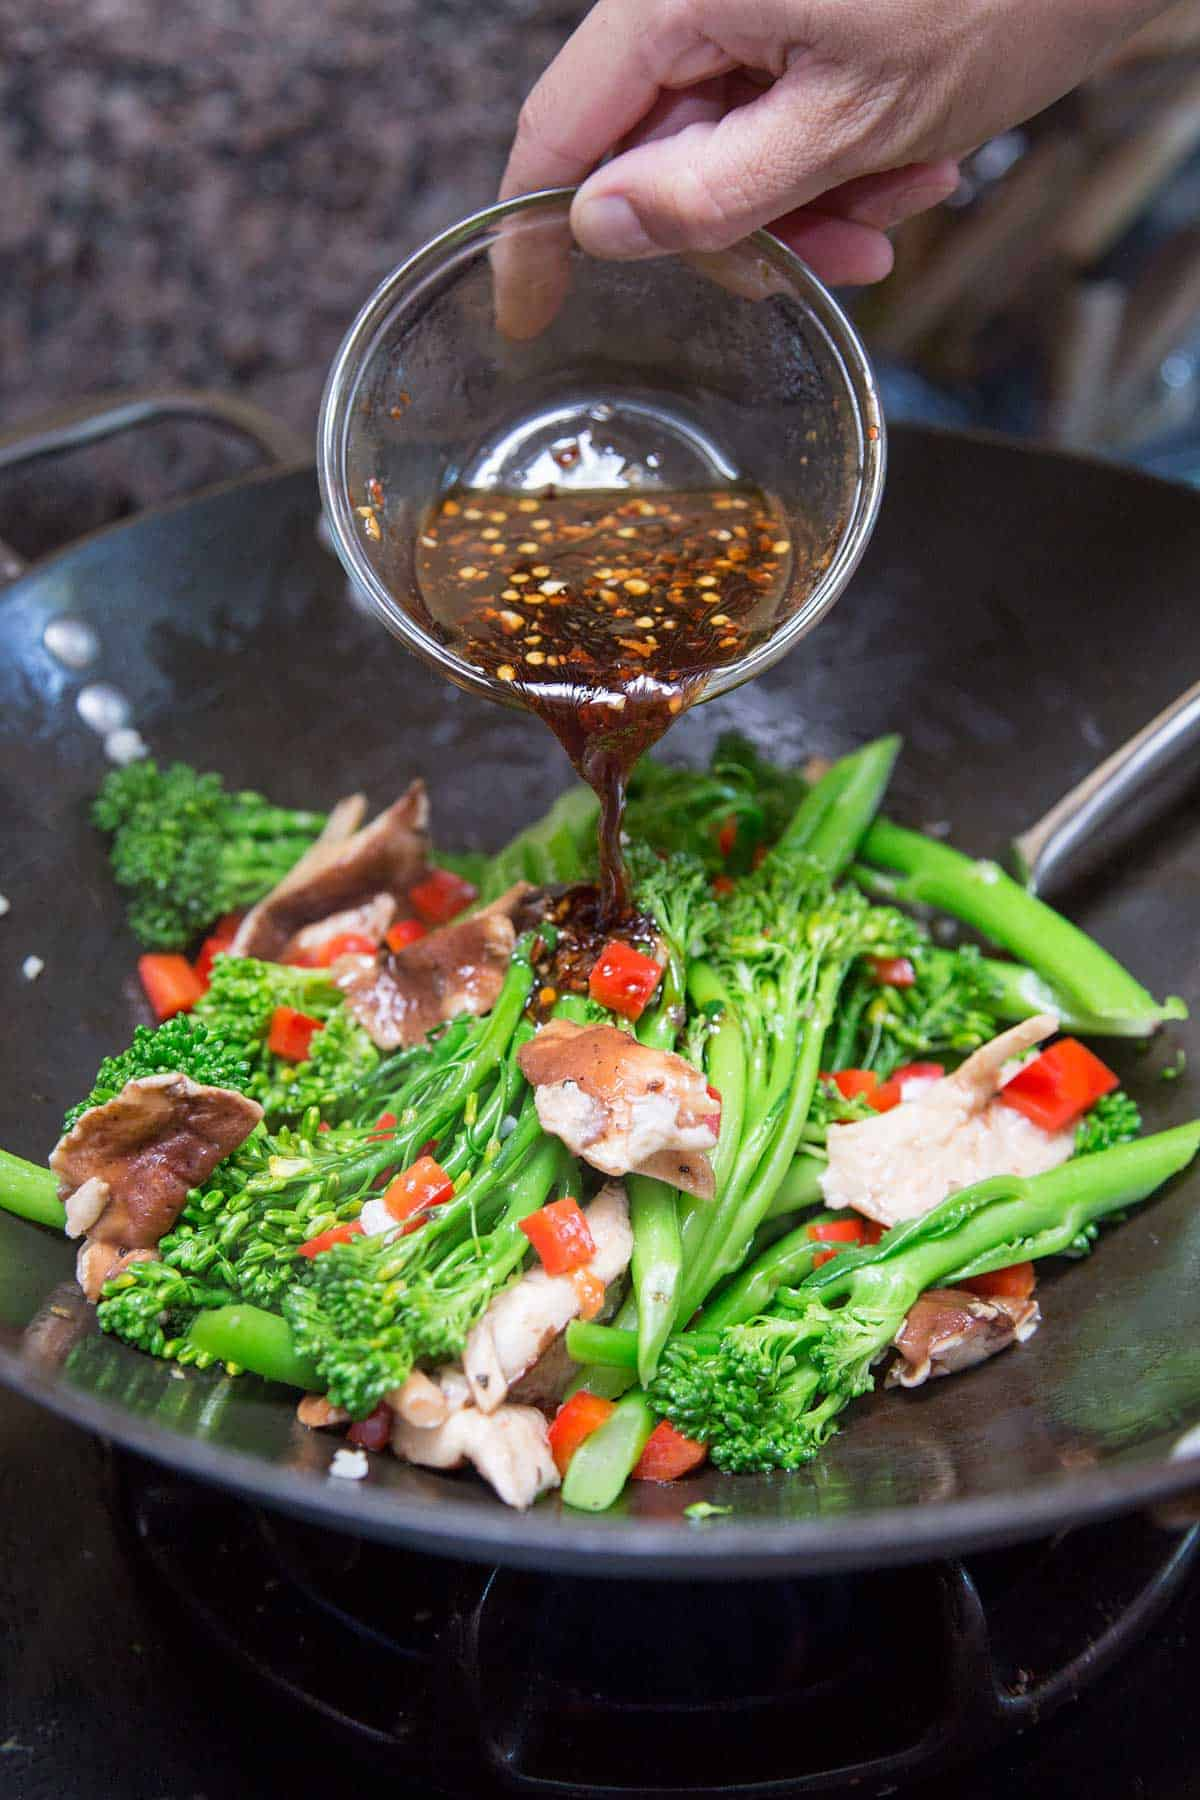 Sriracha hot chili sauce and red pepper flakes are infused into the broccolini | jessicagavin.com